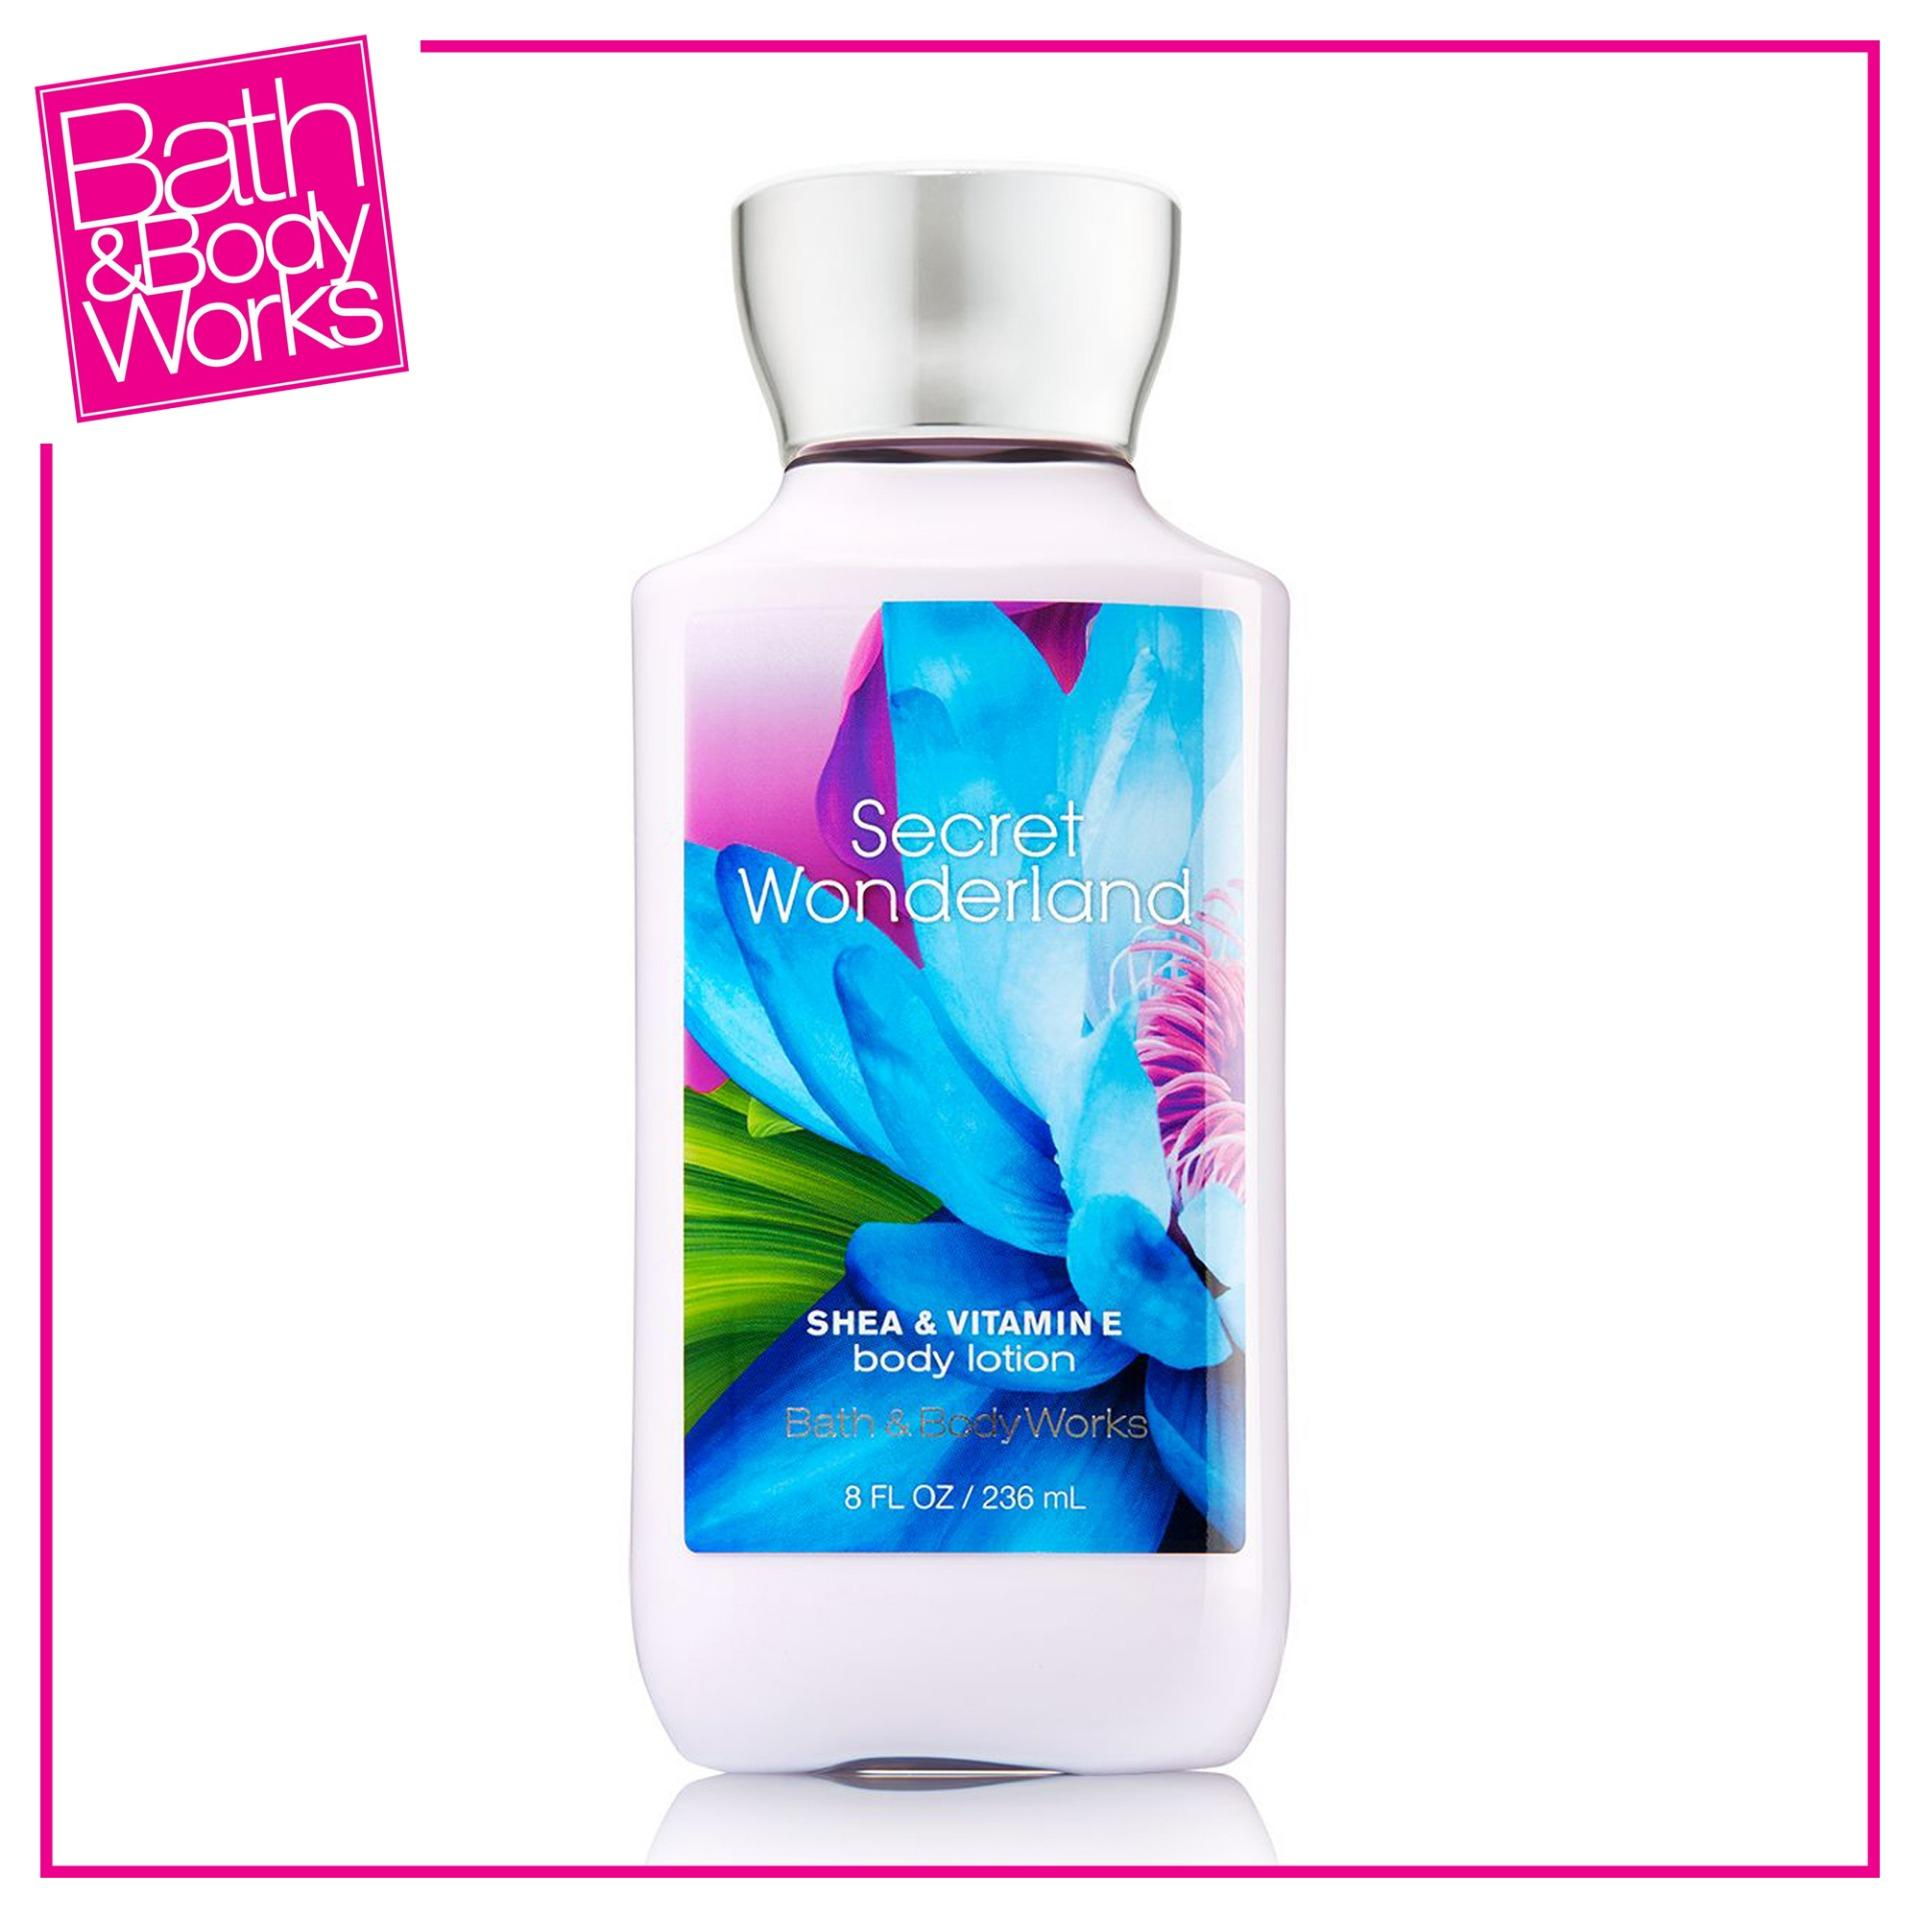 Bath and Body Works Secret Wonderland Body Lotion 236ml